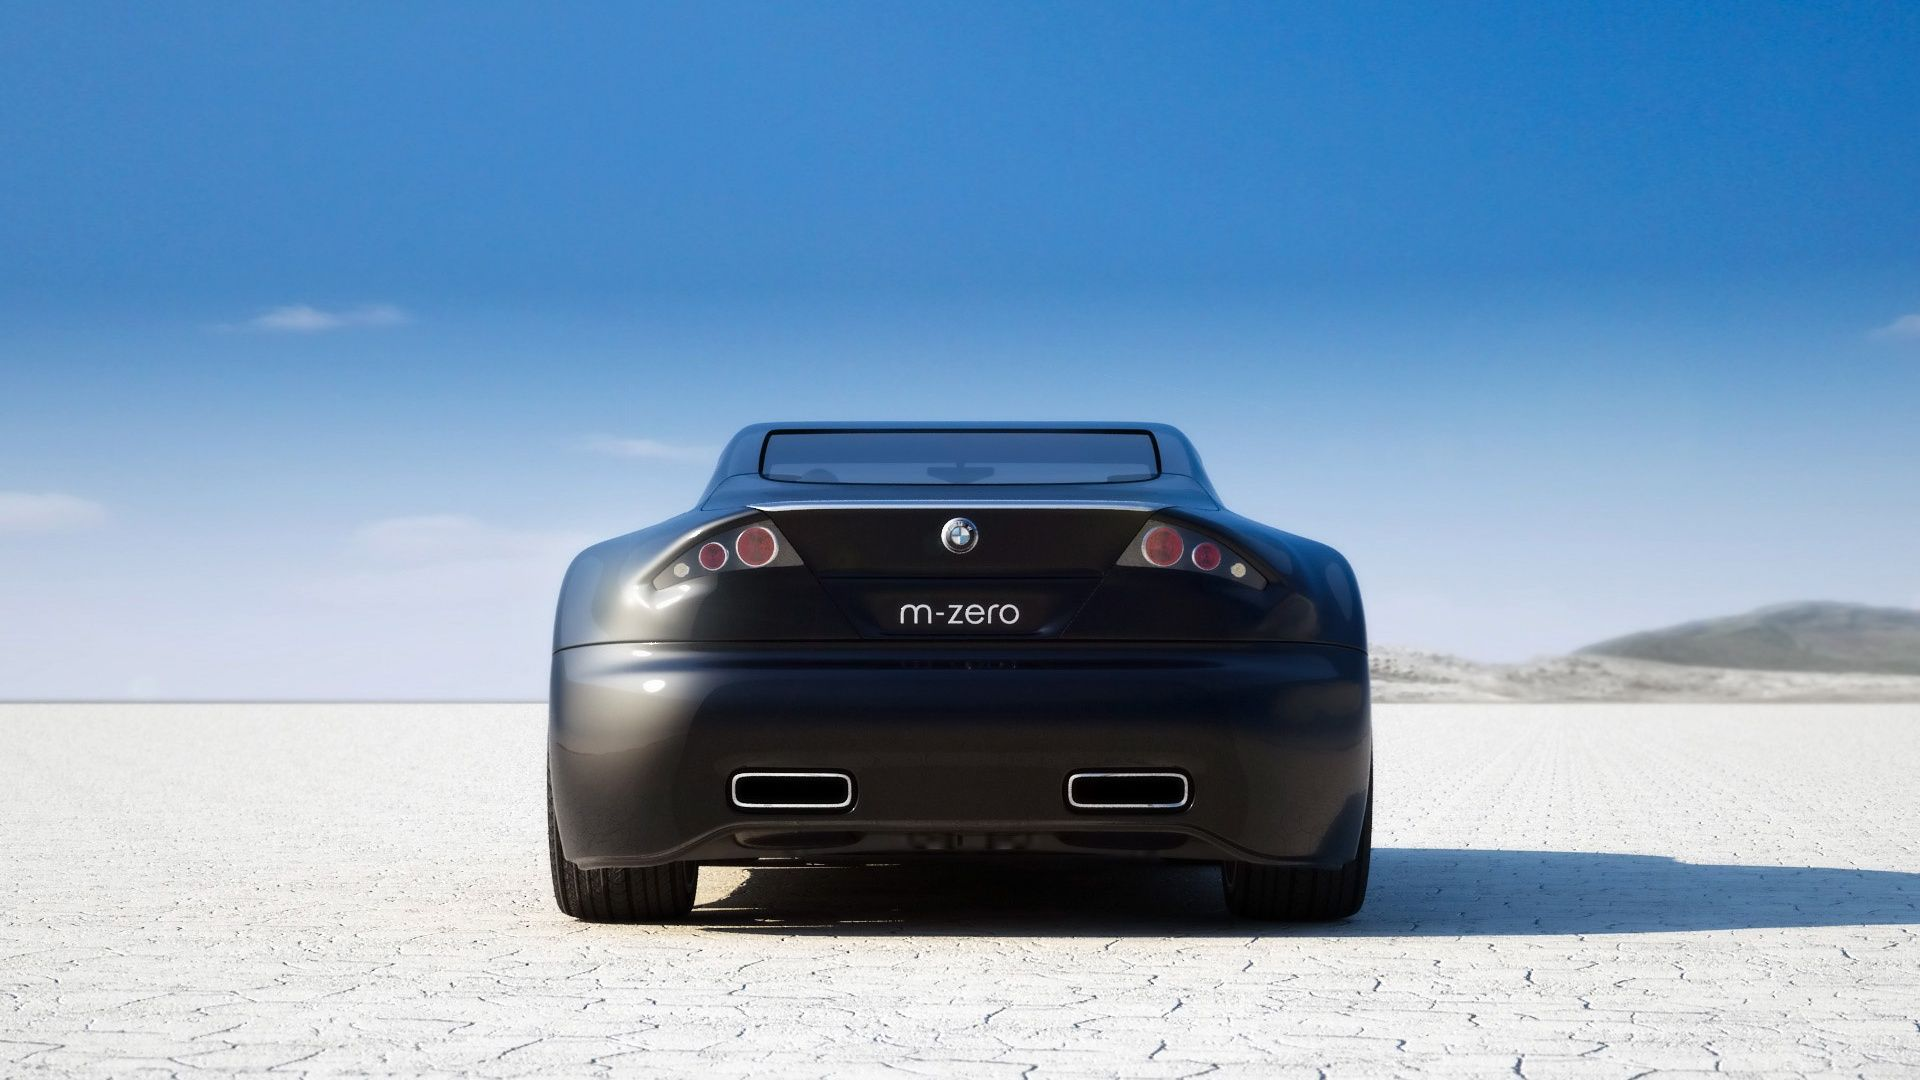 BMW M0 concept on hd wallpapers from http://www.hotszots.eu/BMW/WallpaperBackgroundsBmw6.htm